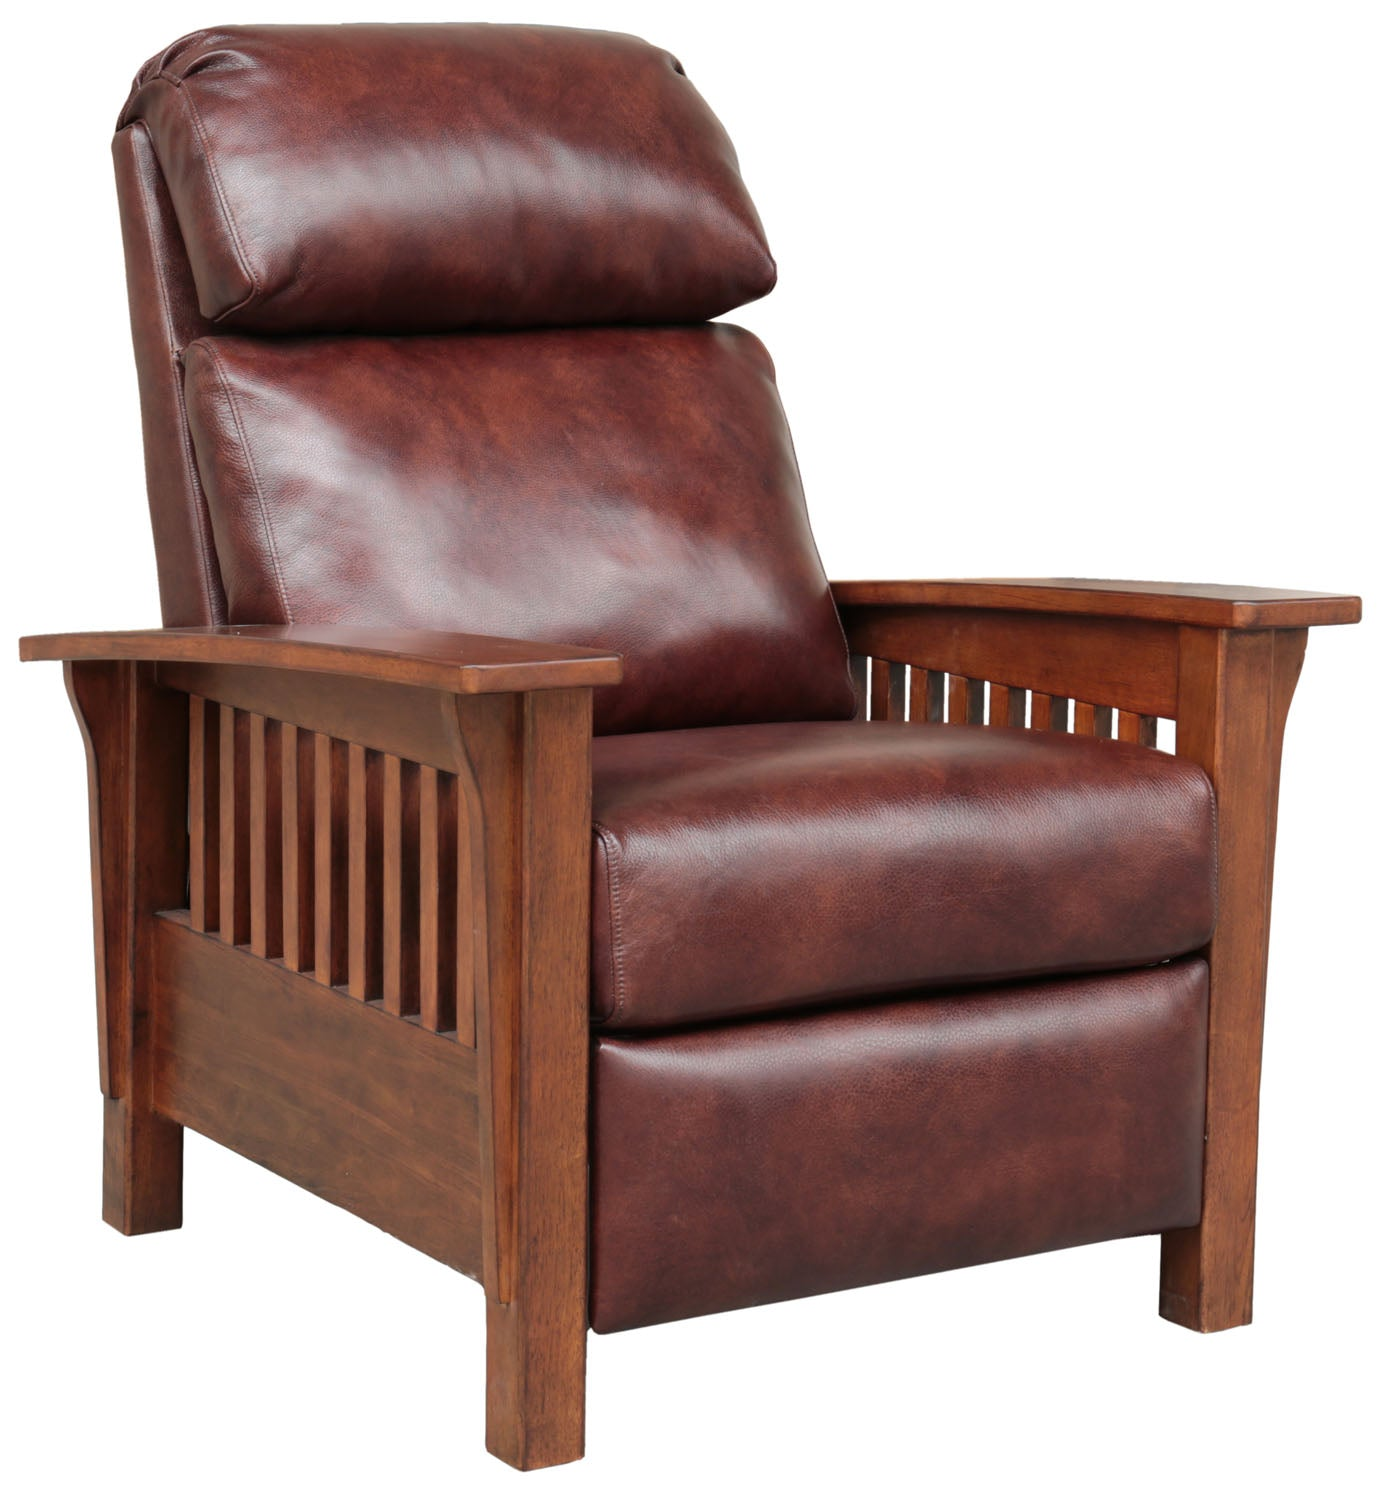 Picture of: Mission Recliner Barcalounger Leather Recliner Reclining Arm Chair Lift And Massage Chairs